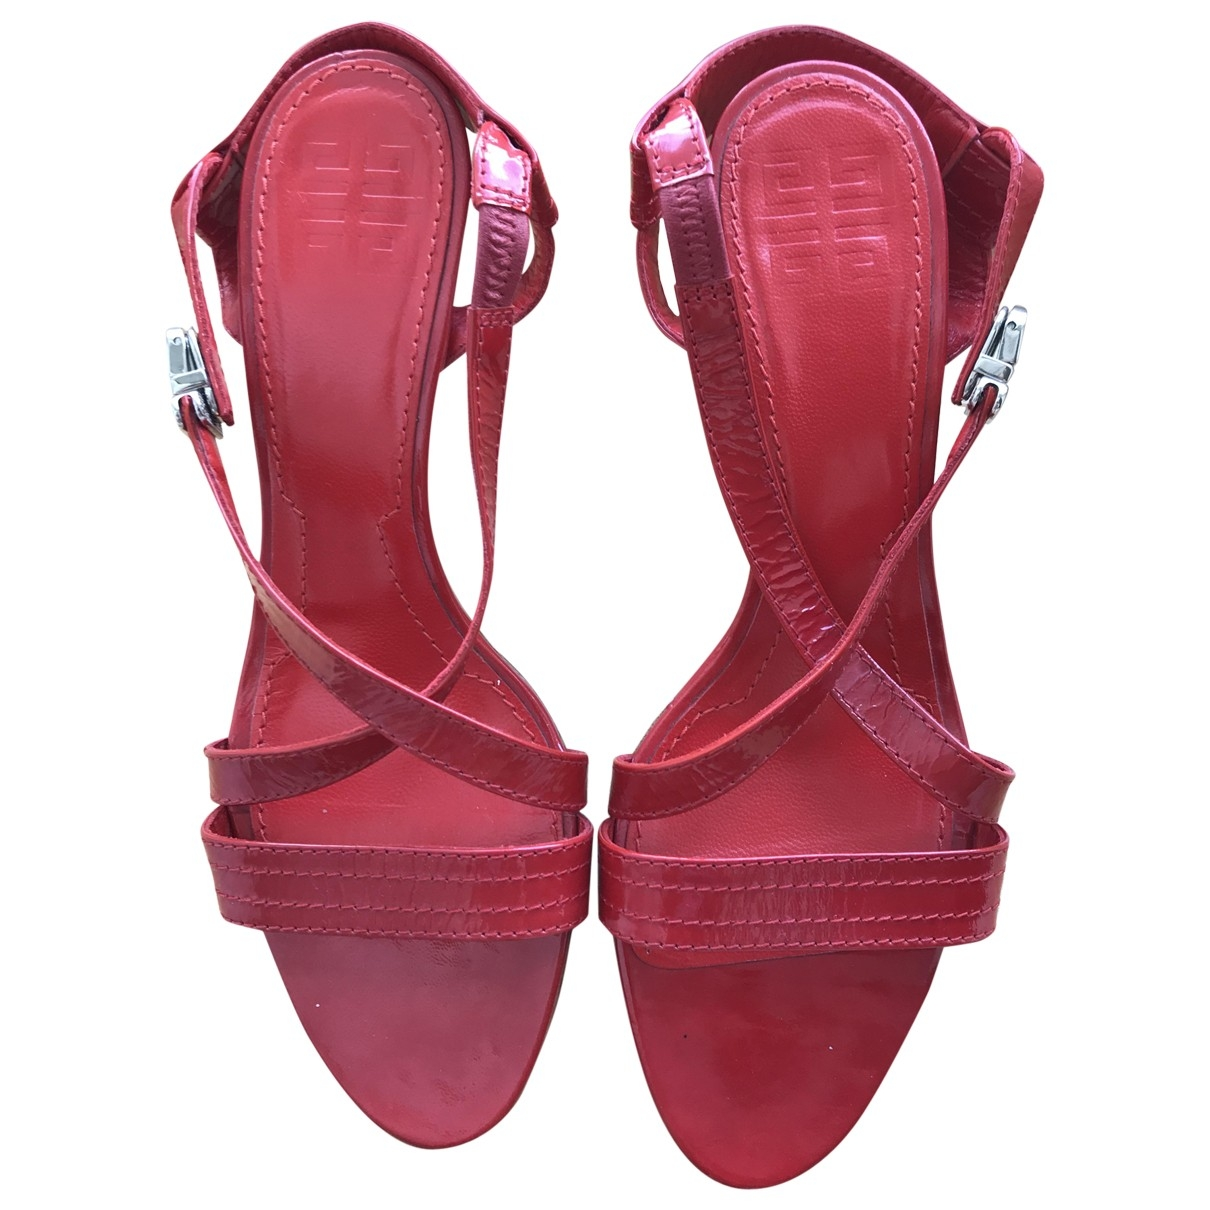 Givenchy \N Red Patent leather Sandals for Women 39 EU